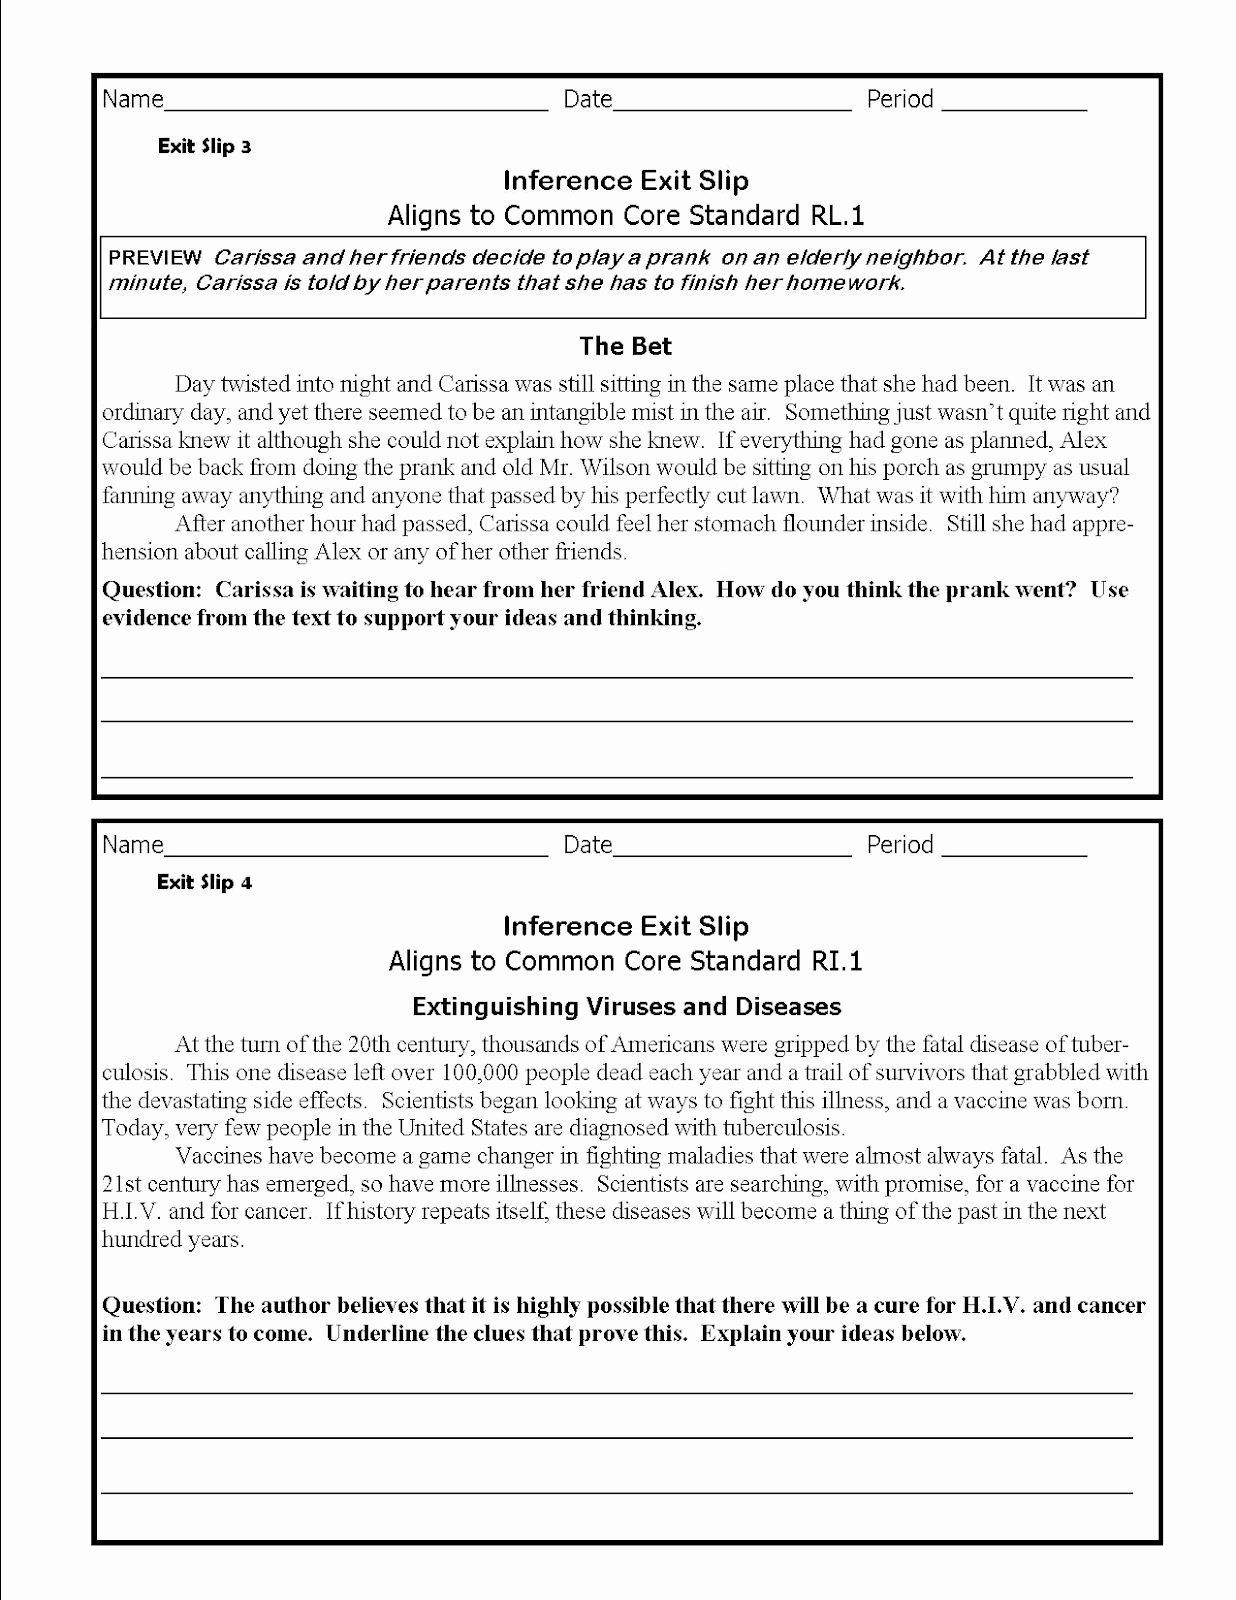 Middle School Inference Worksheets Lovely thelessoncloud